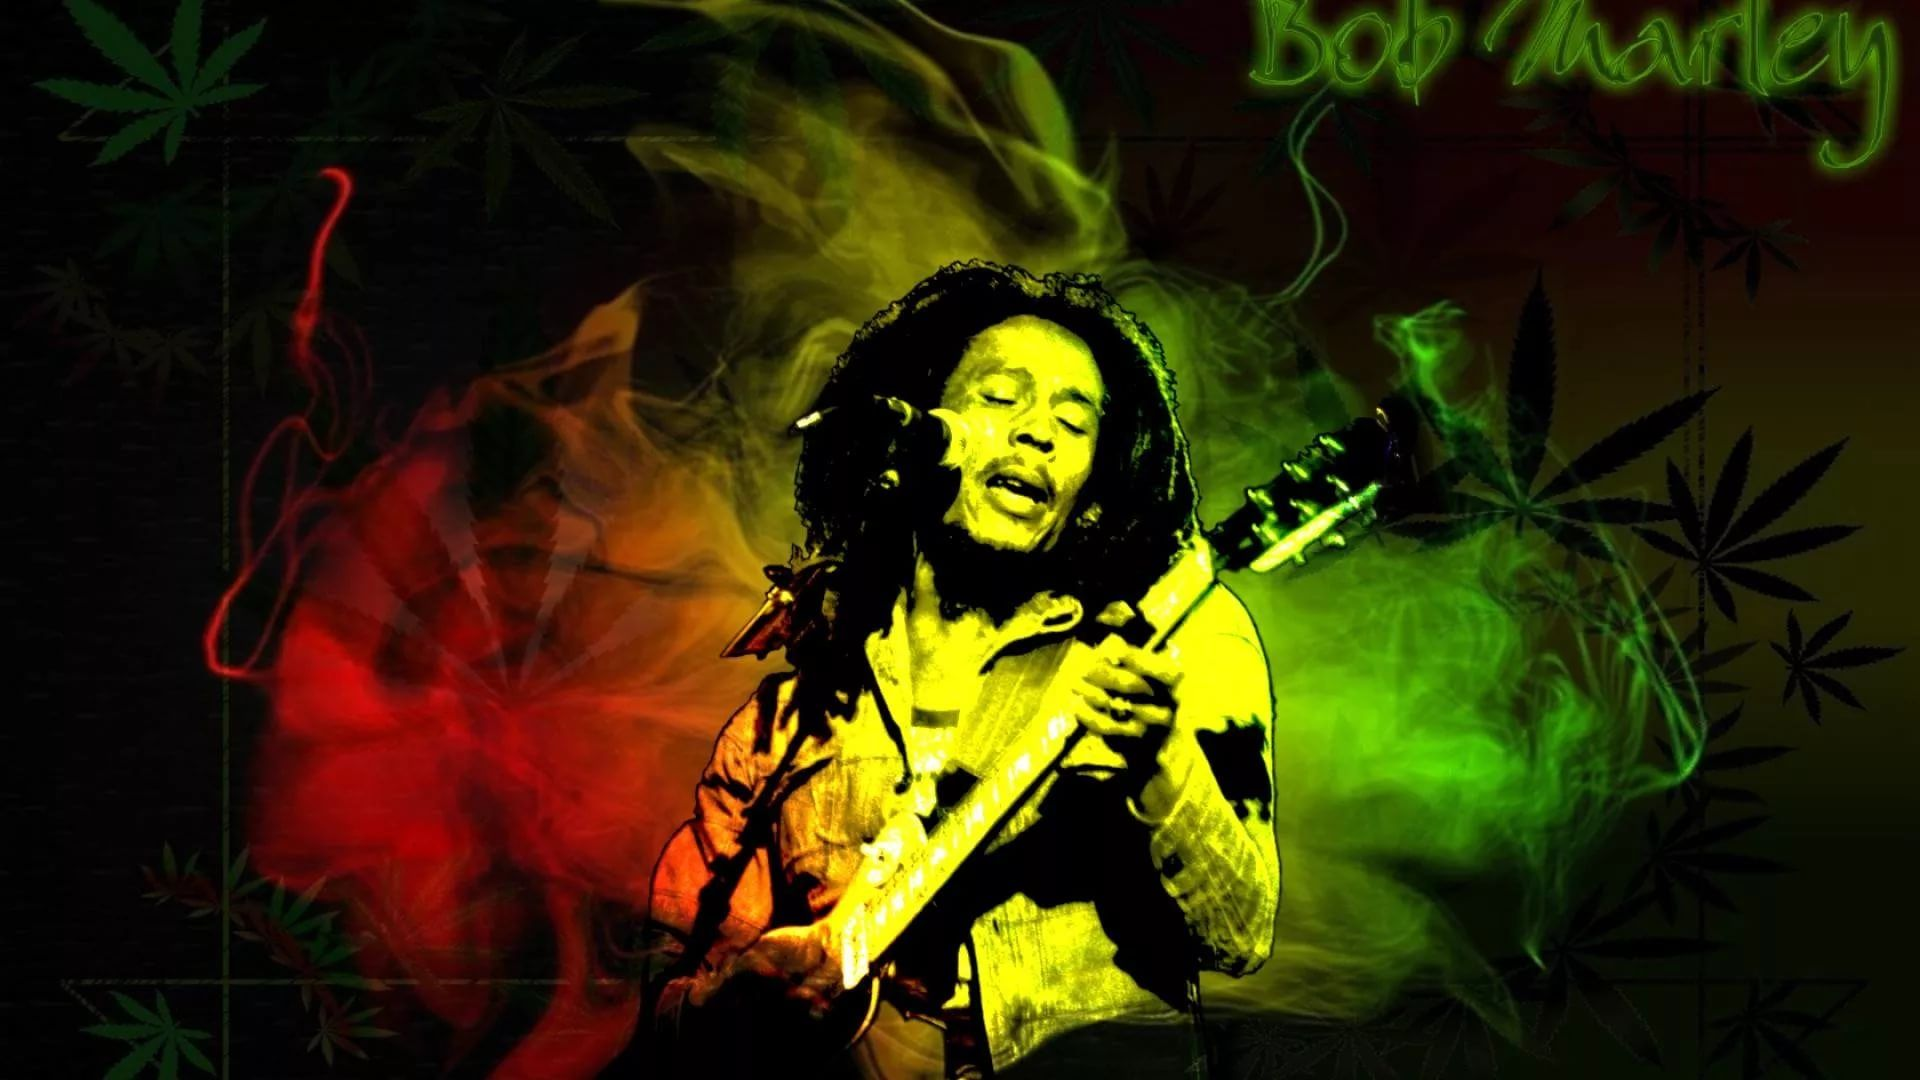 Bob Marley hd wallpaper 1080